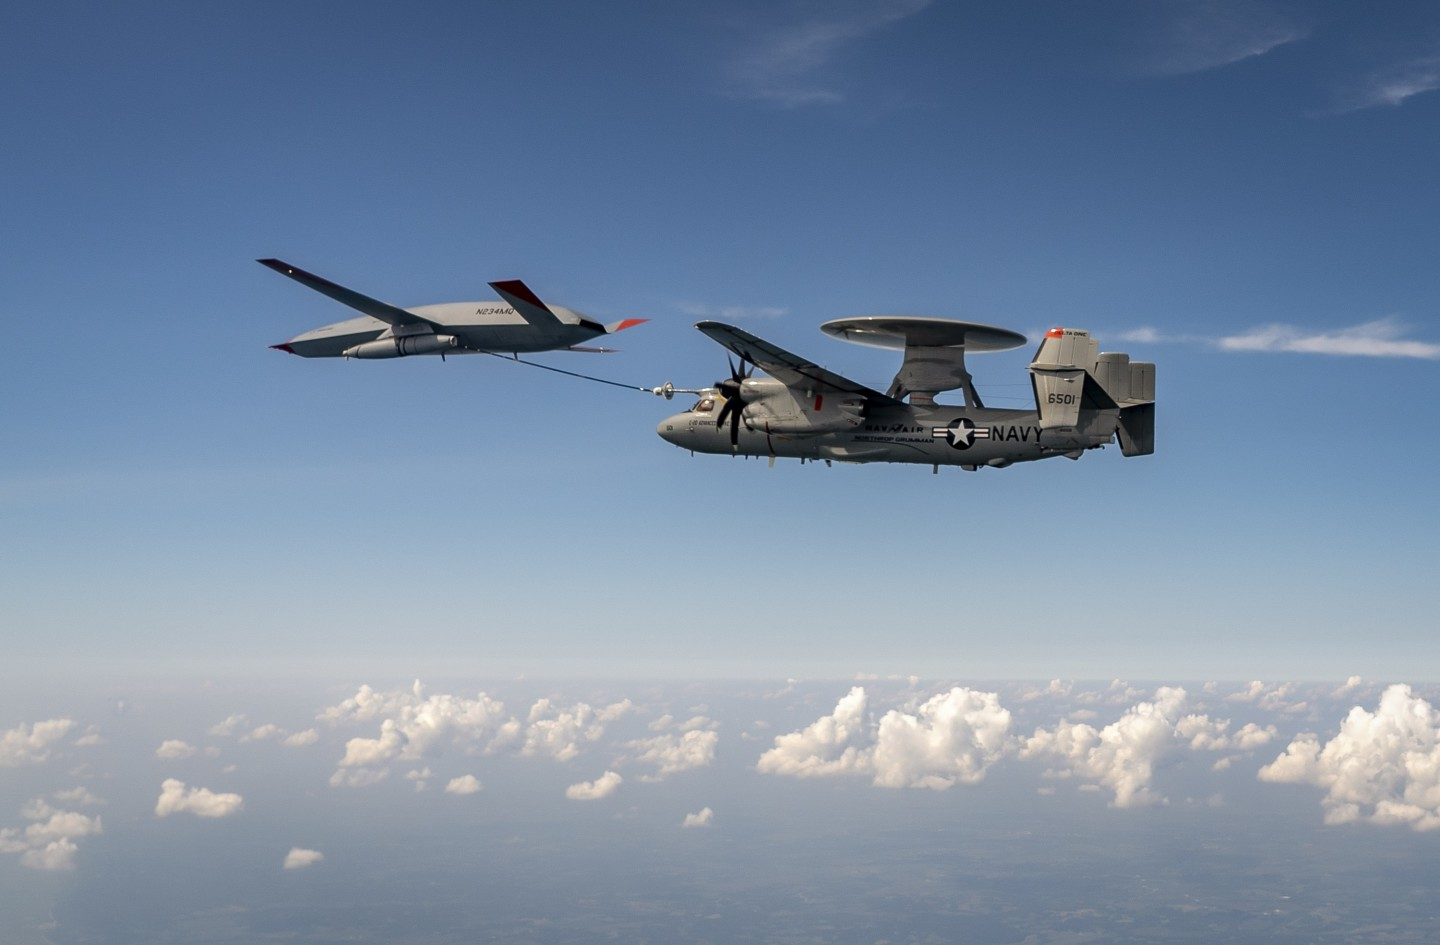 The flight test studied how the Hawkeye handled the Stingray's engine wake